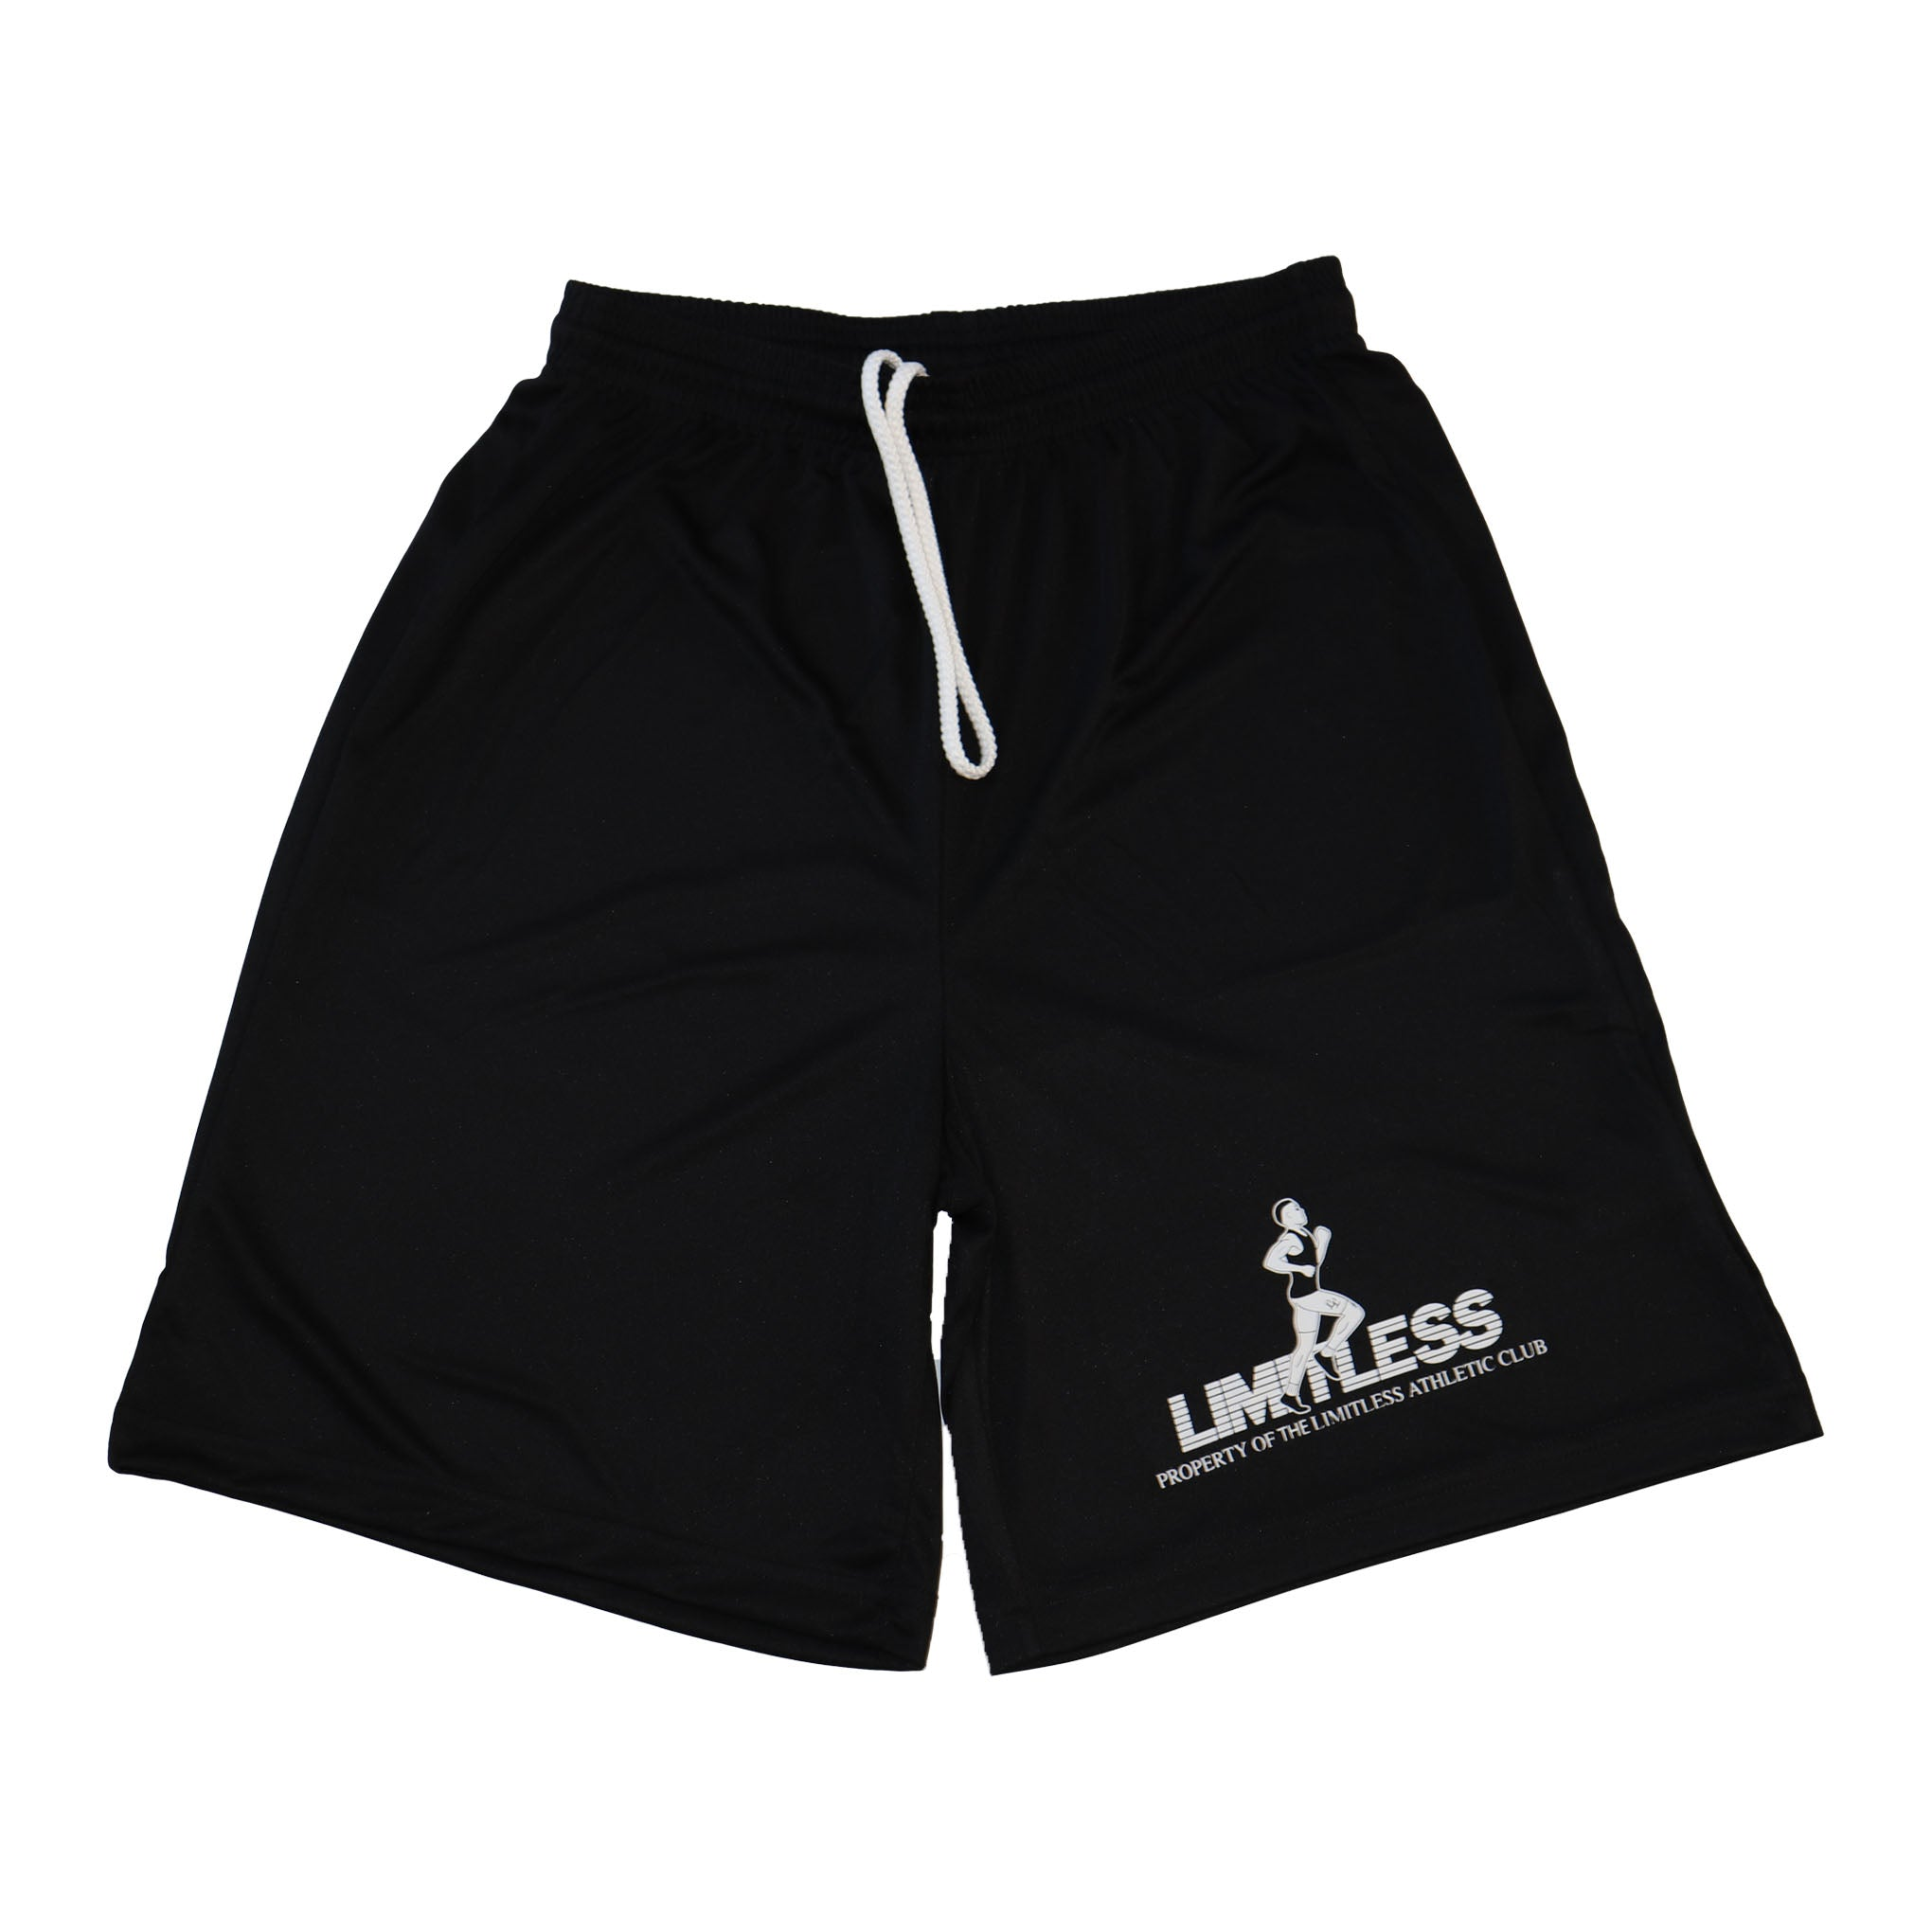 Runners Shorts